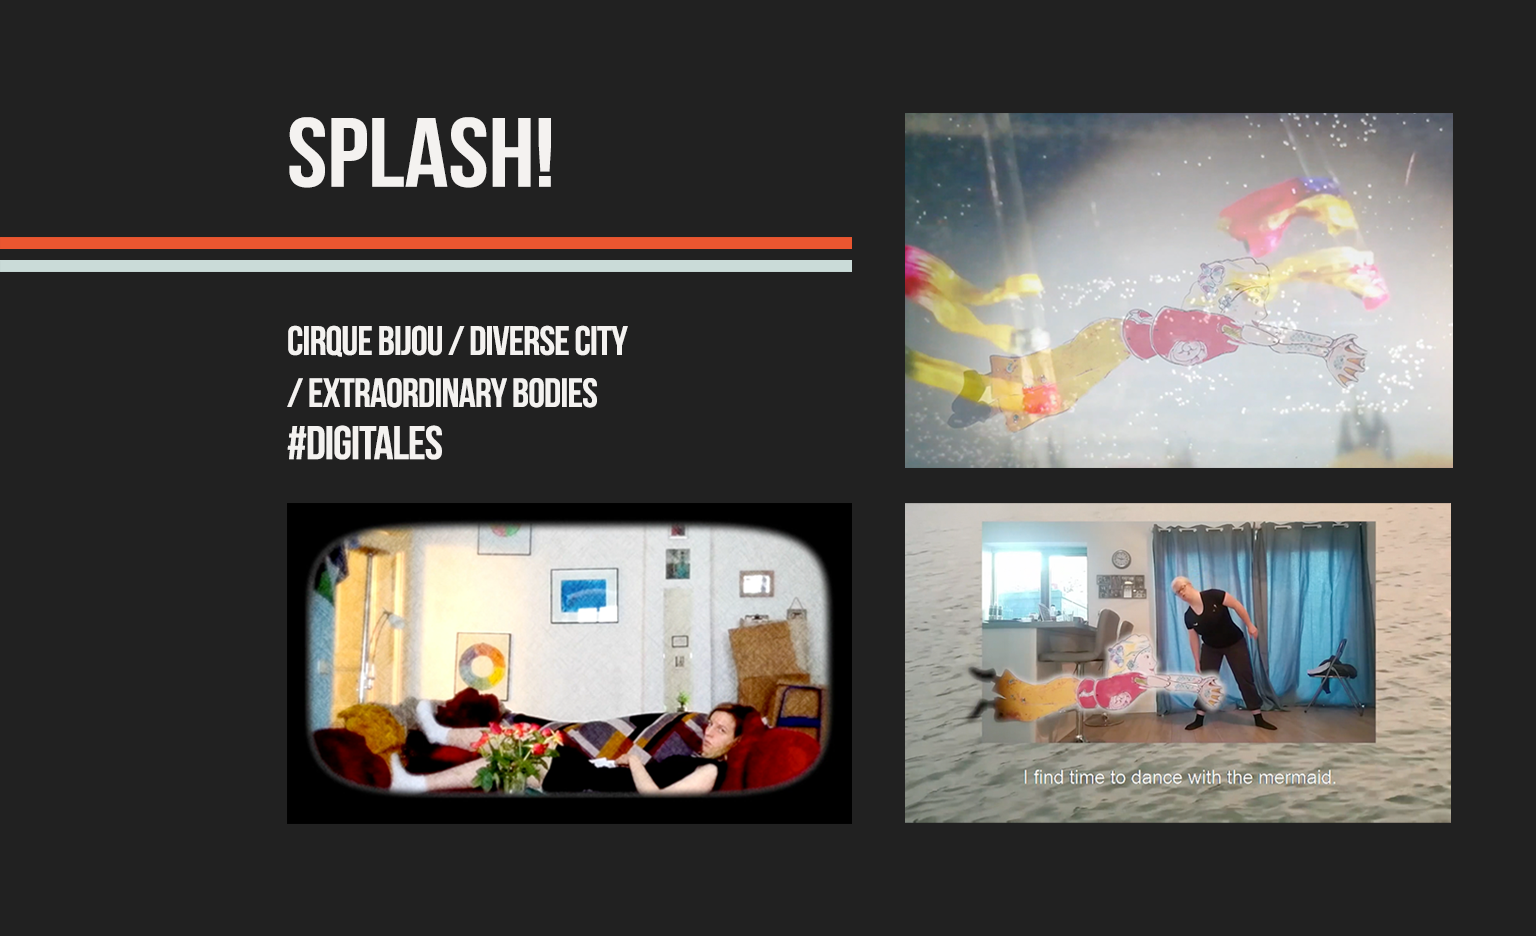 """Black background. White text in the top left reads: """"Splash!"""". Two lines, one orange and one light blue below. Underneath the lines, white text reads: """"Cirque Bijou / Diverse City / Extraordinary Bodies #DigiTales"""". Below the writing and on the right, three snippets of the Splash! shorts, which combine stop-motion animation and film."""